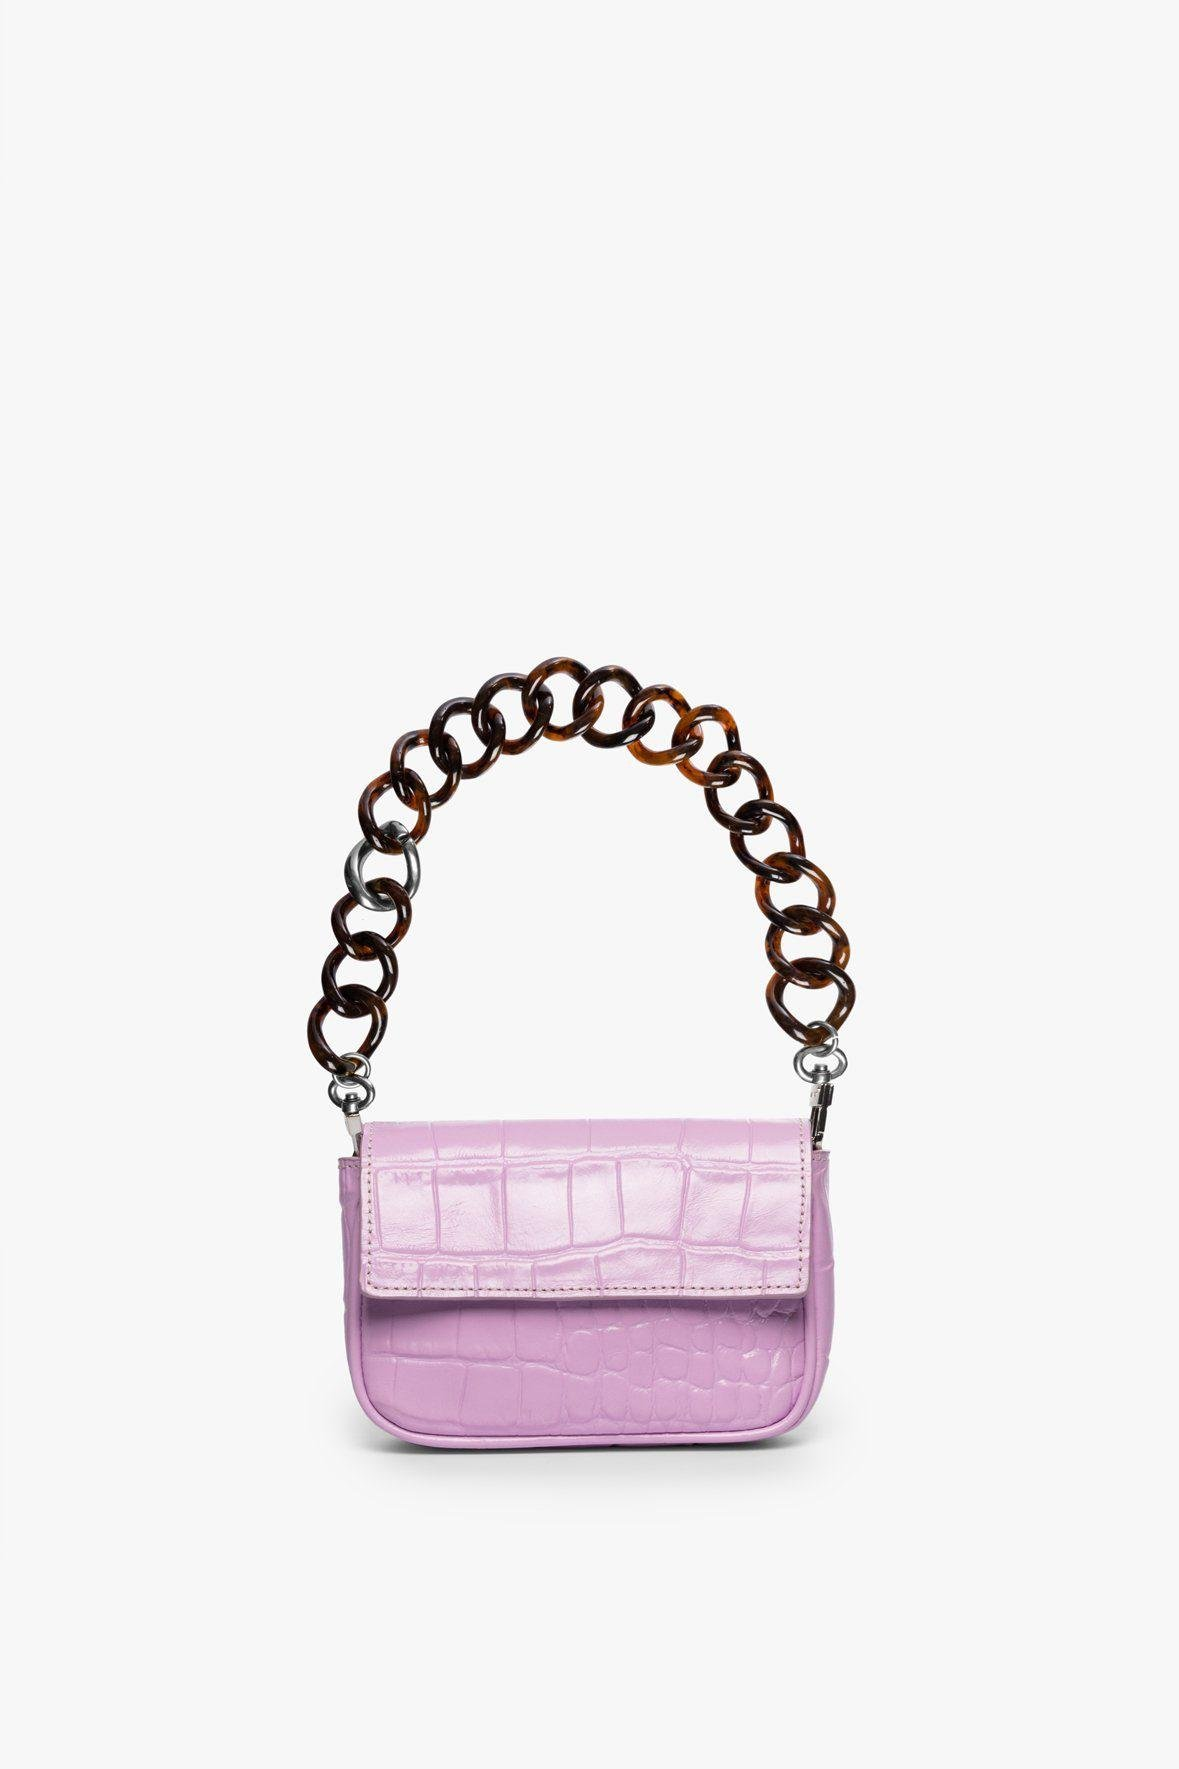 MINI TOMMY CHAIN BAG | LAVENDER CROC EMBOSSED